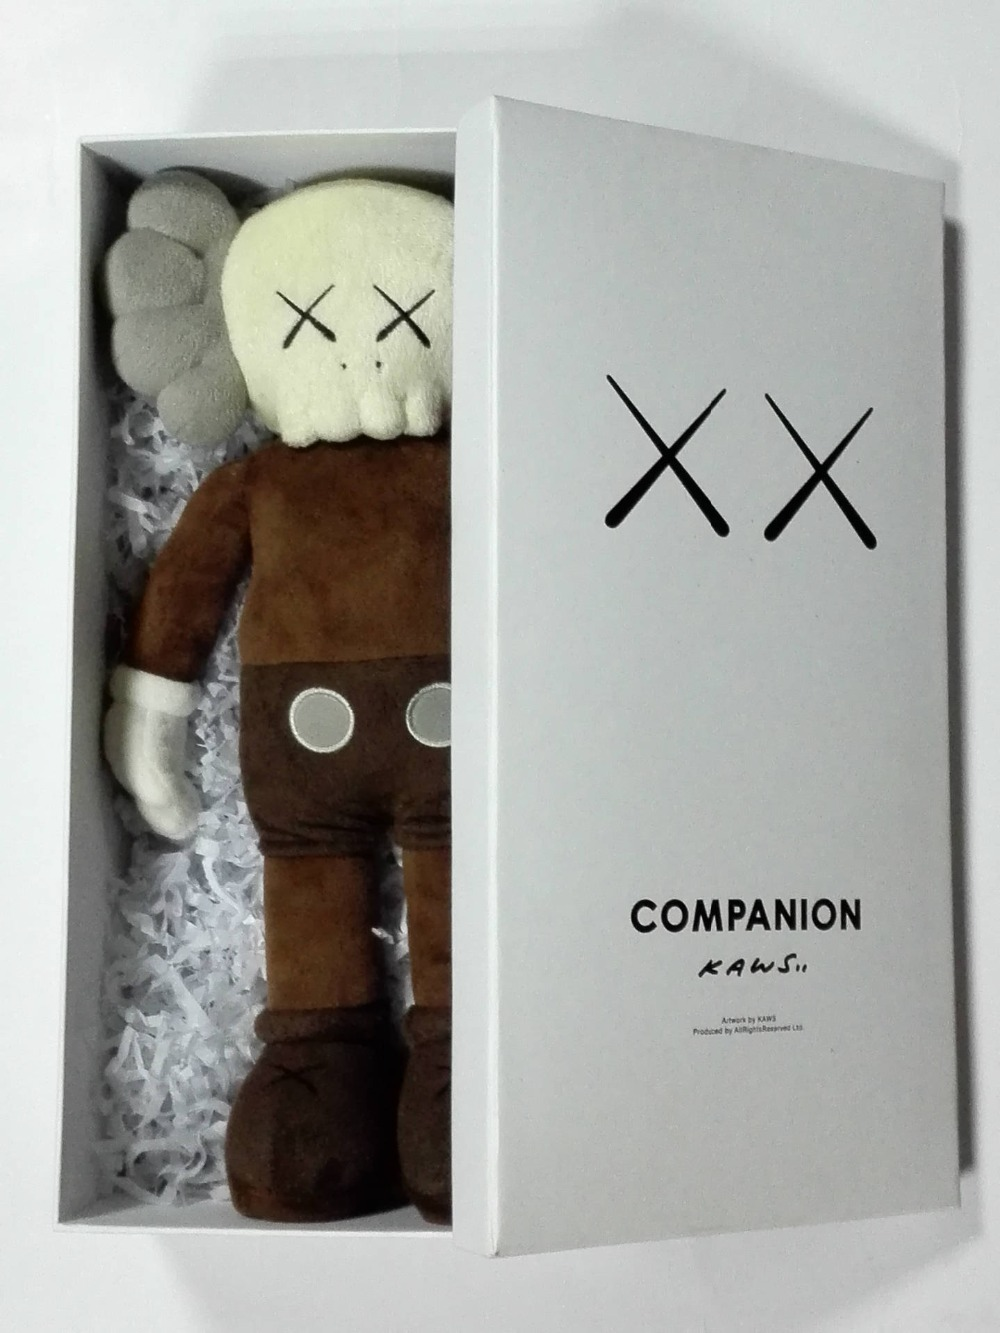 Kaws prototype plush doll doll 16 Inch KAWS BFF Pink rabbit Fashion Doll OriginalFake Brian Street Art Action Figure Collectible 12 inch kaws bff pink rabbit fashion doll originalfake brian street art pvc action figure collectible model toy retail box s168